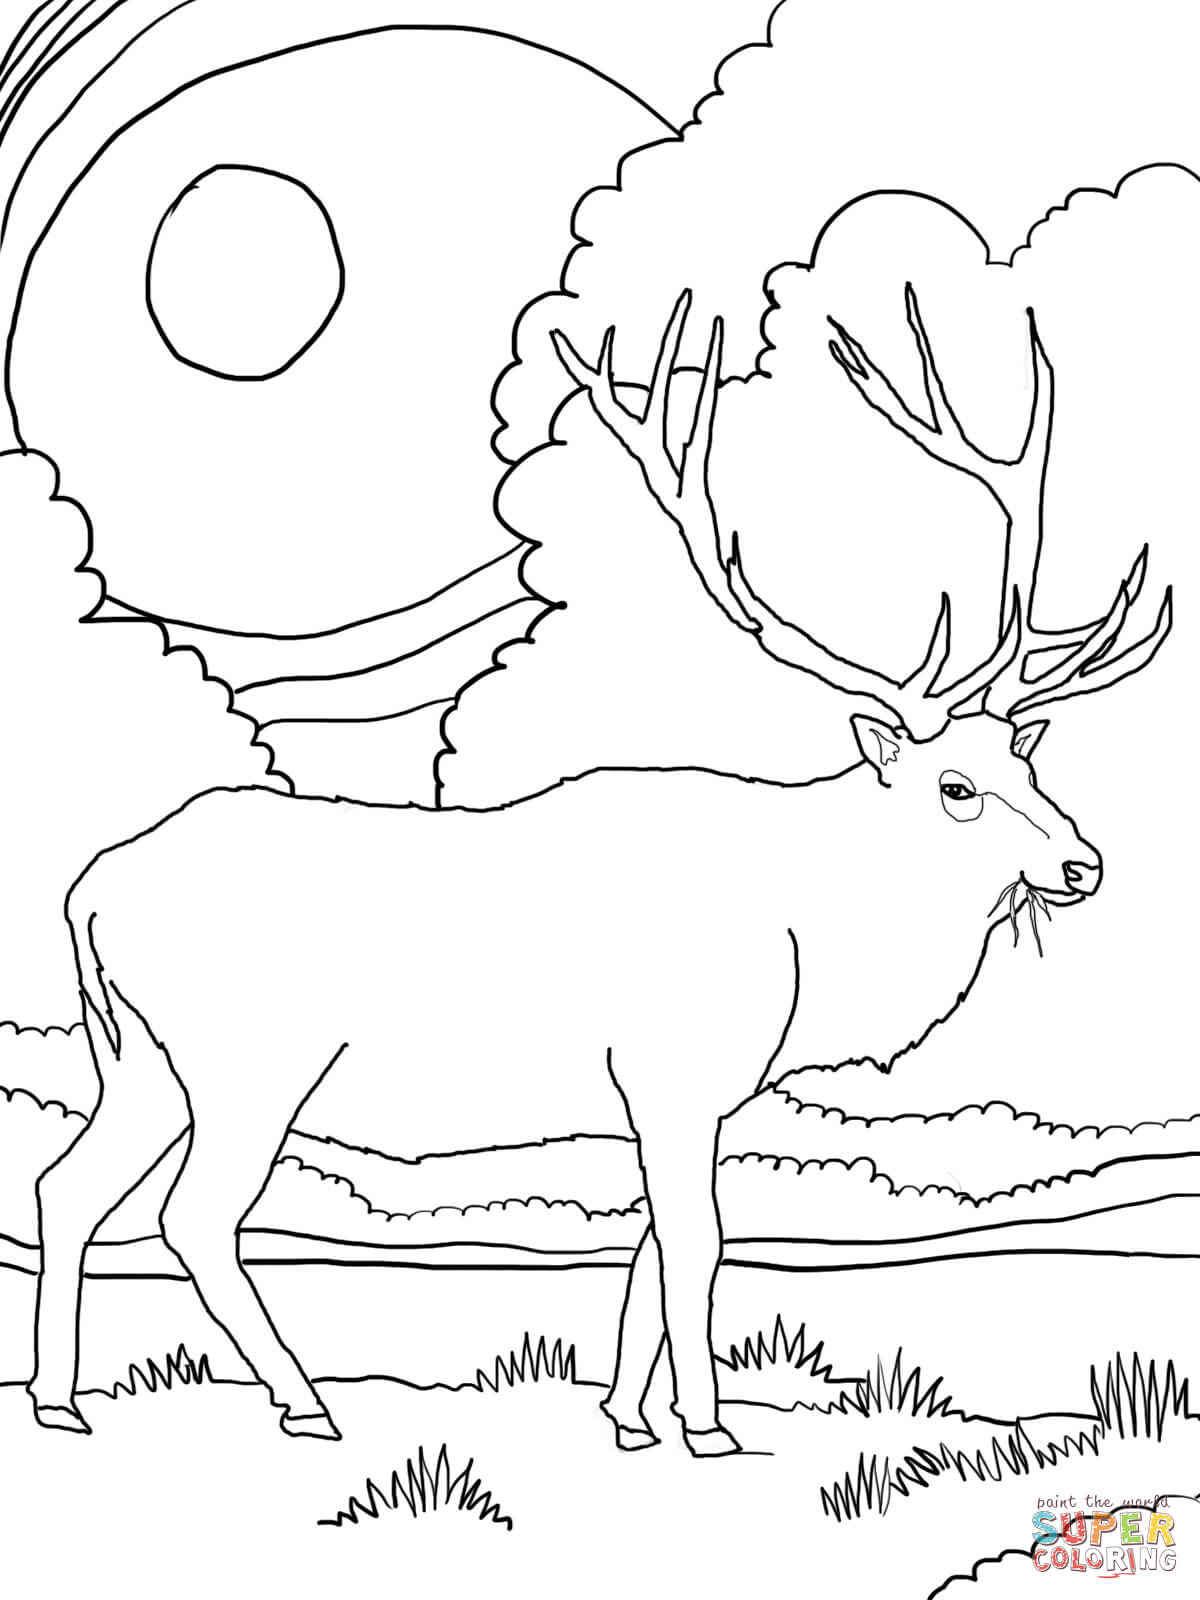 Rocky Mountains Coloring Page